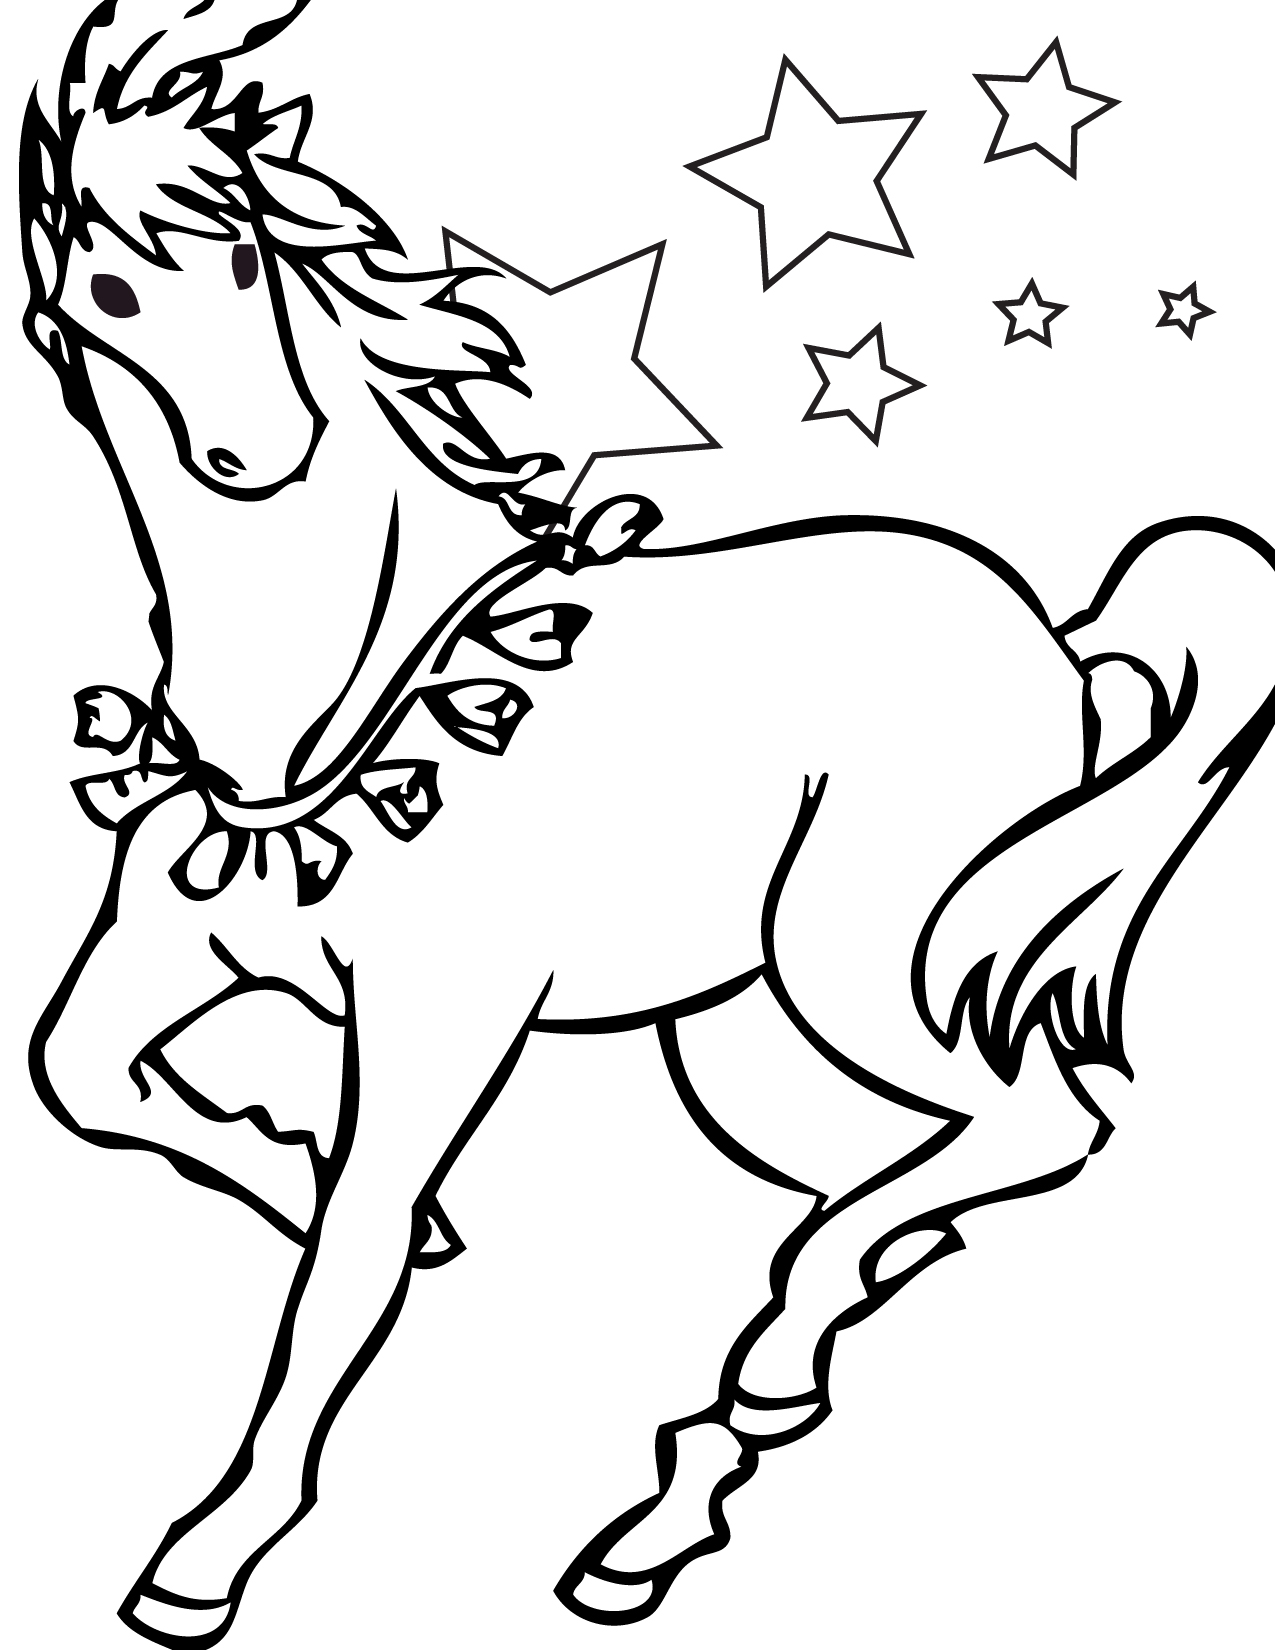 1275x1650 New Printable Horse Coloring Pages About Remodel Coloring Pages